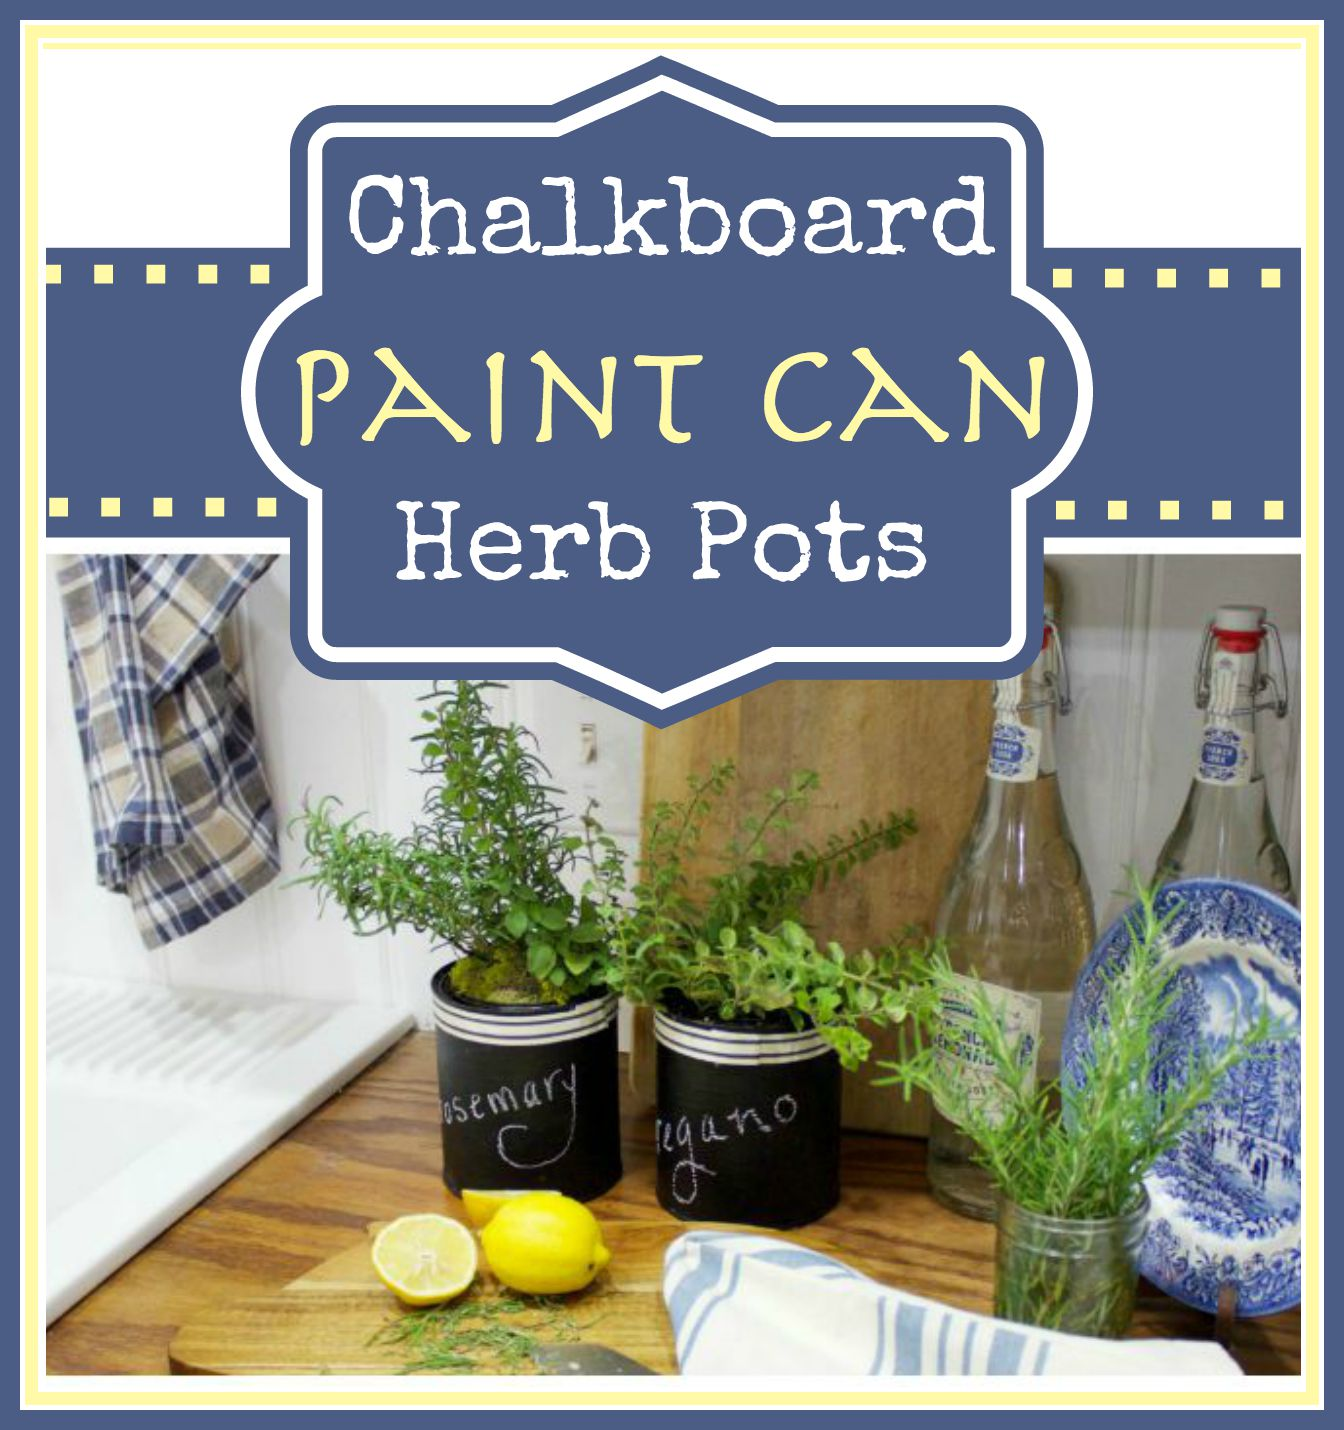 How to Create Paint Can Herb Pots by The Everyday Home | www.everydayhomeblog.com